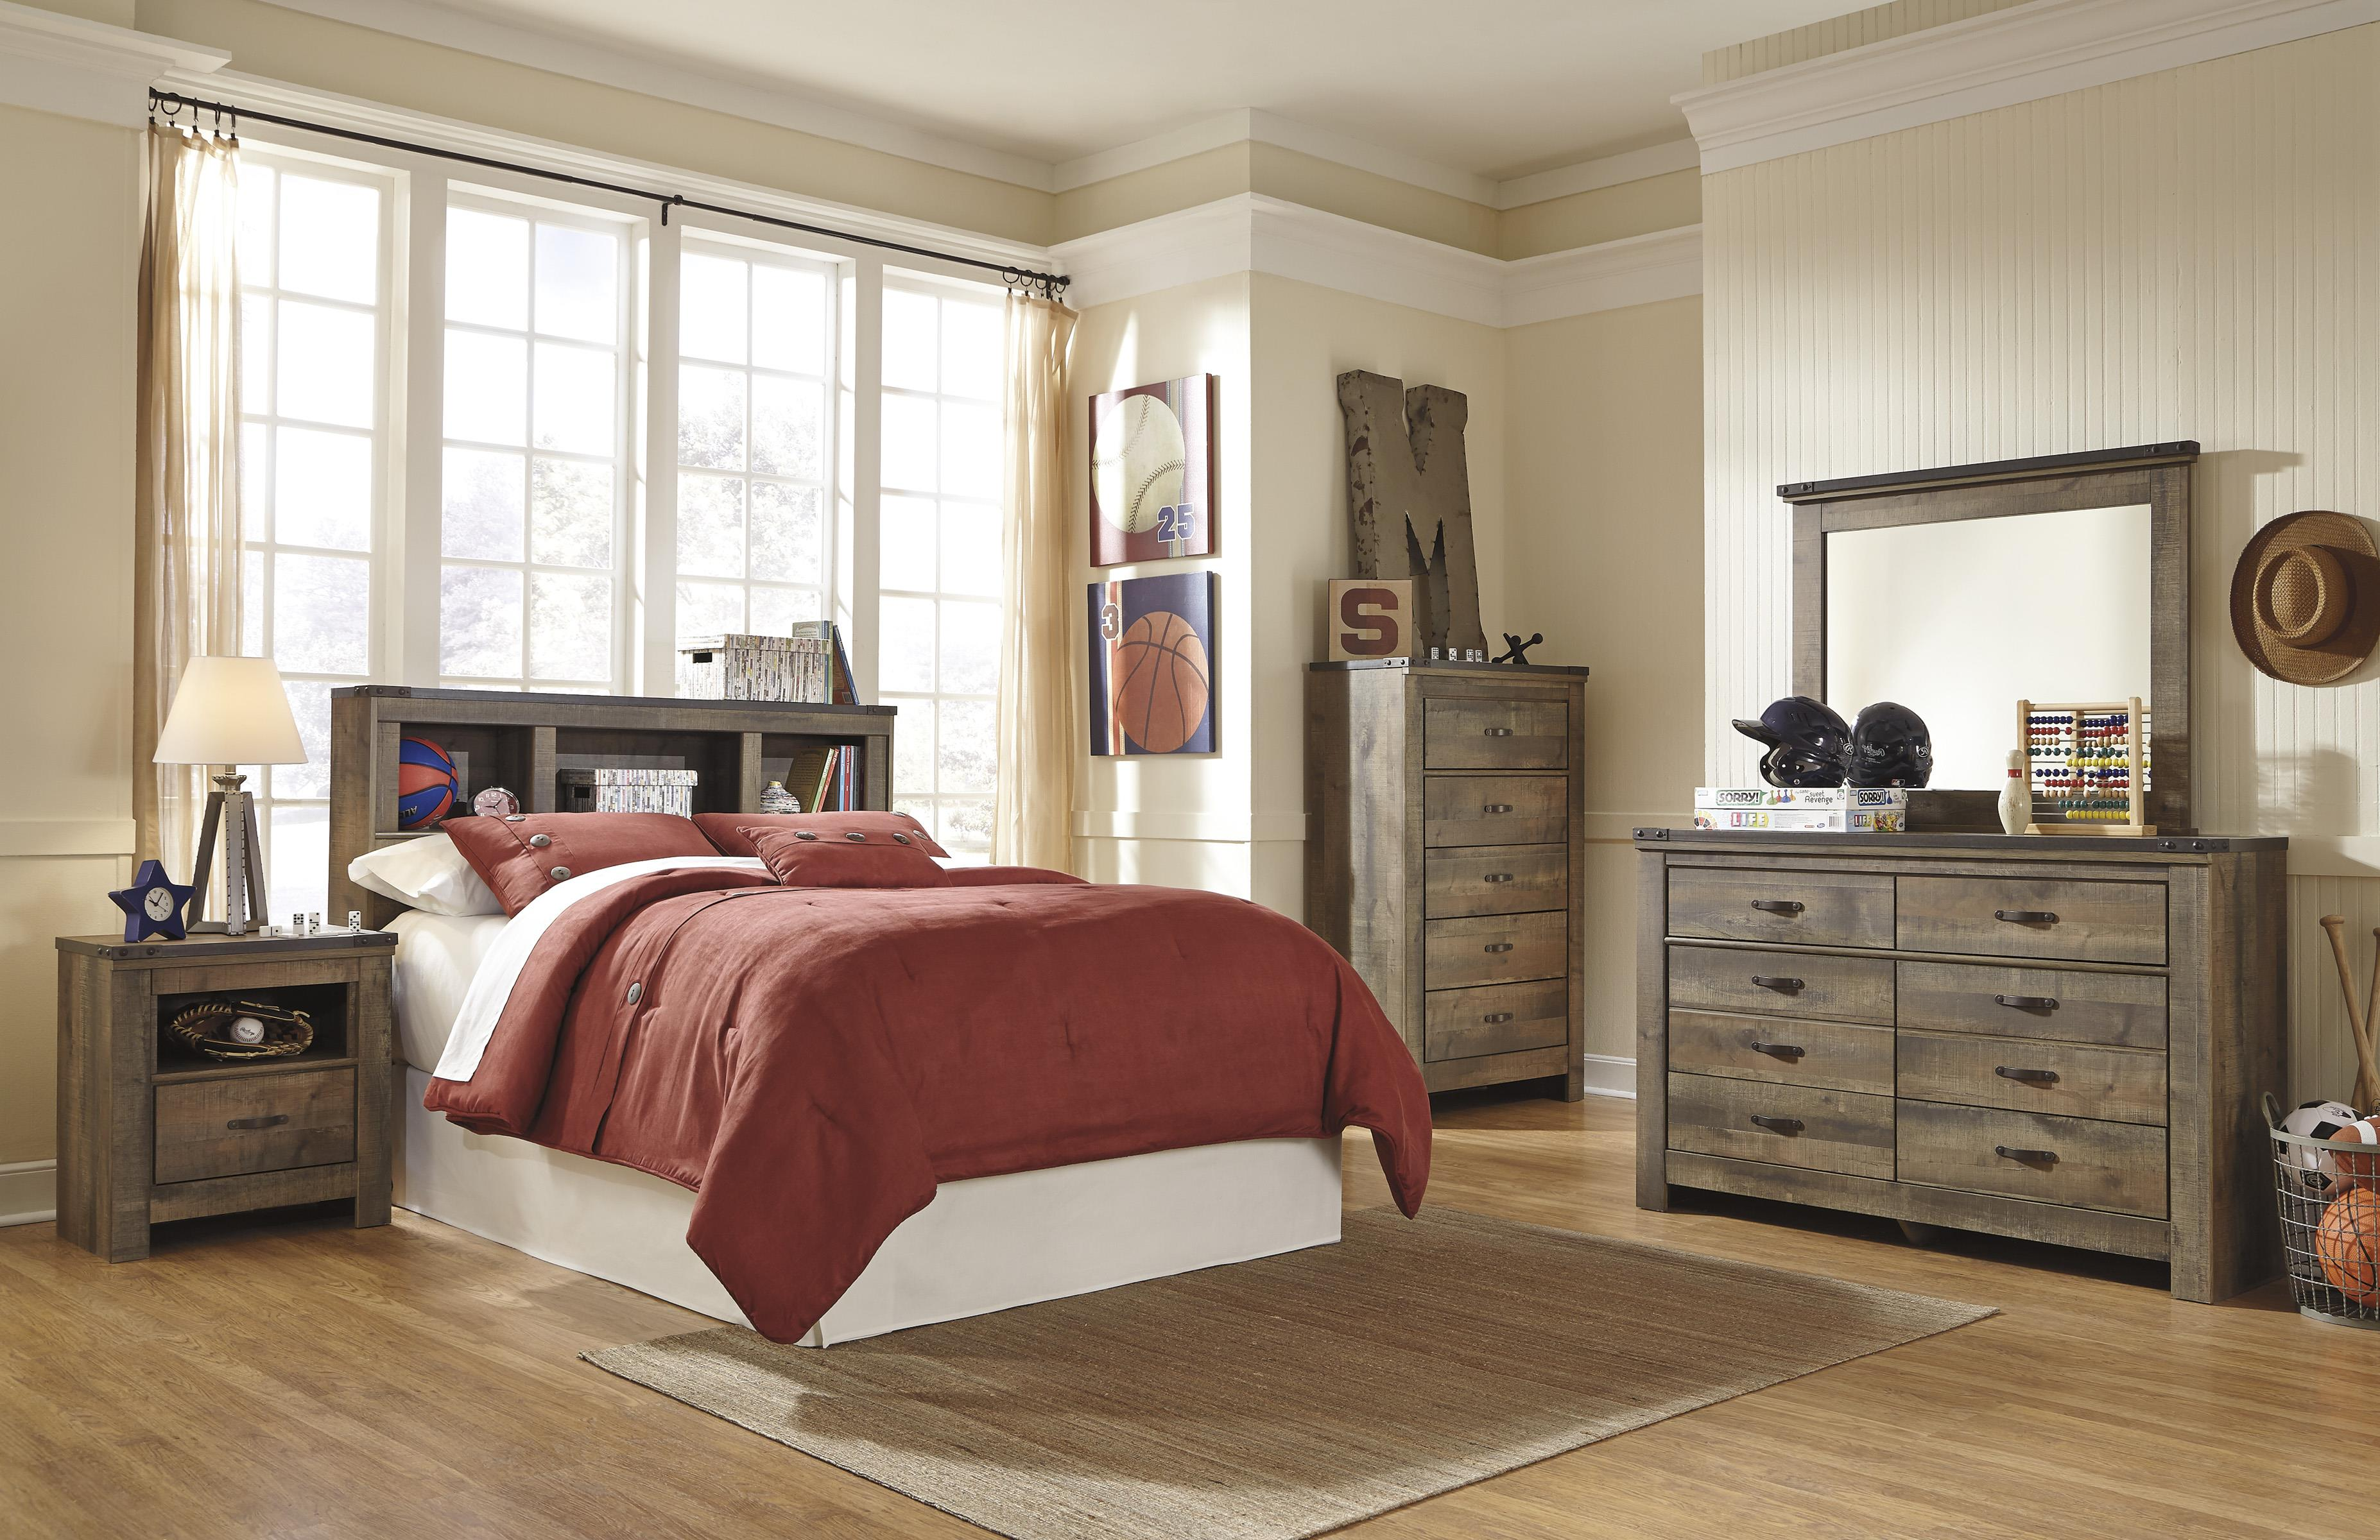 Signature Design by Ashley Trinell Full Bedroom Group - Item Number: B446 F Bedroom Group 5